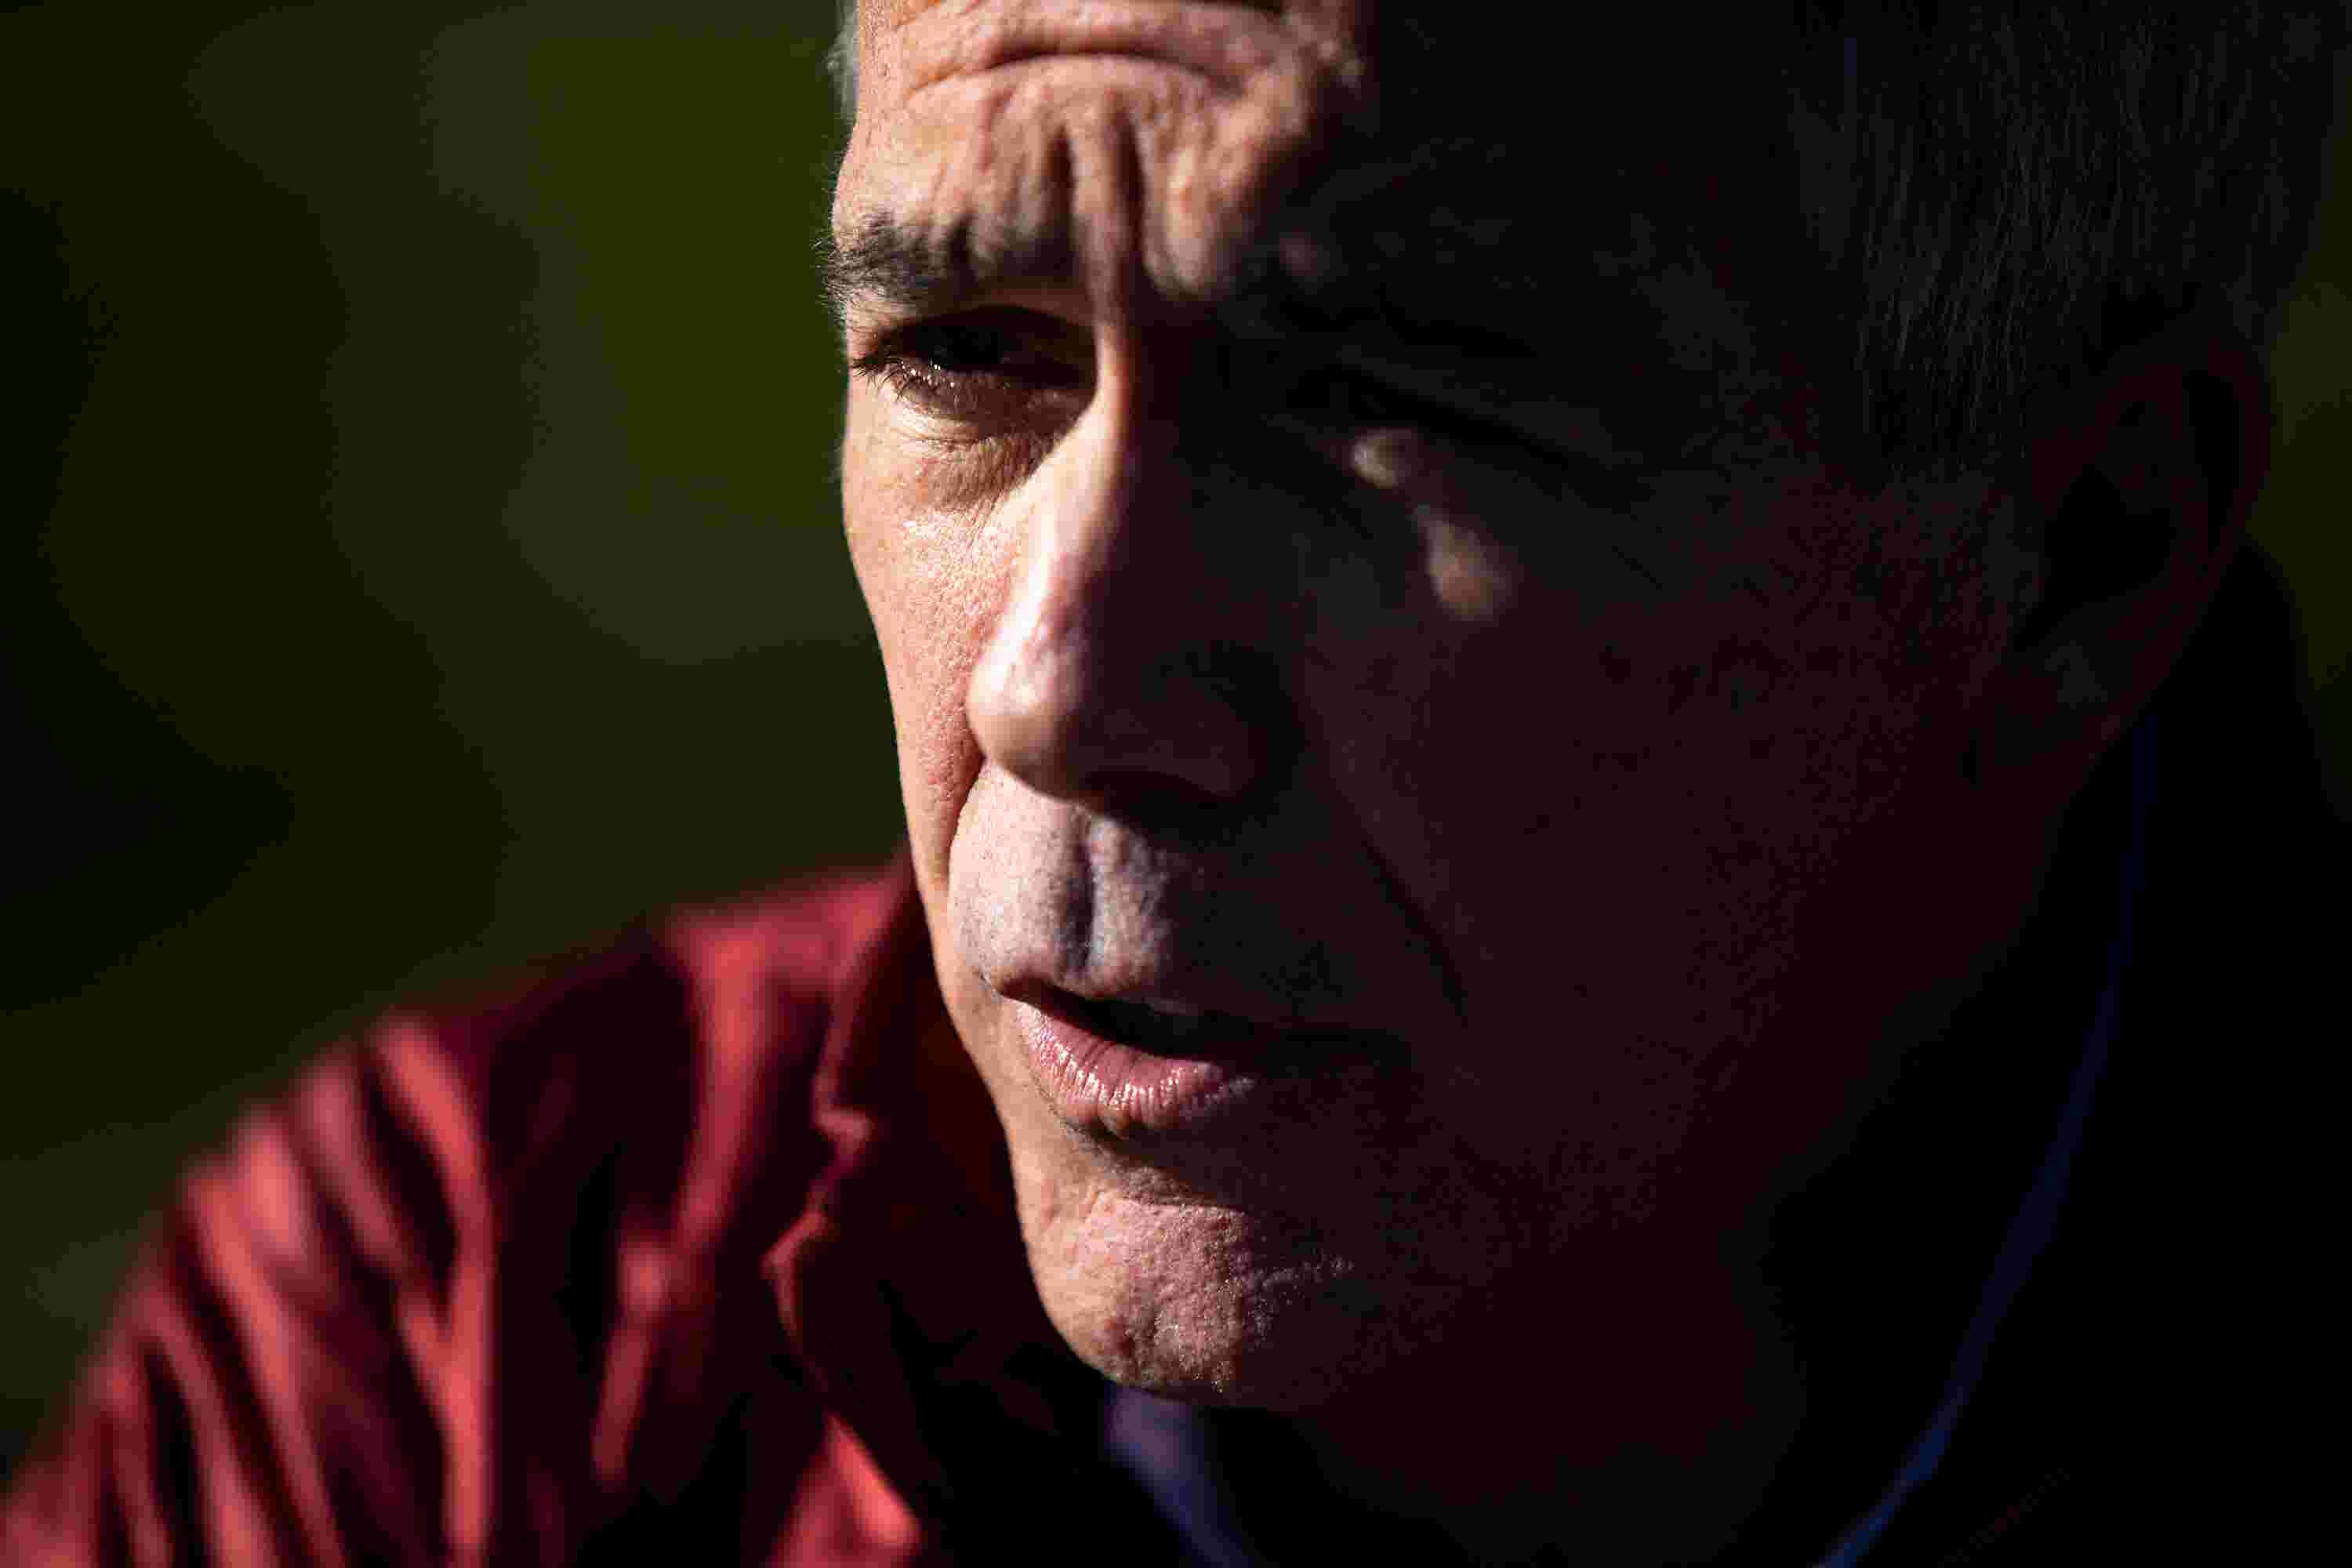 Republican presidential candidate Joe Walsh plans to go all in on Iowa